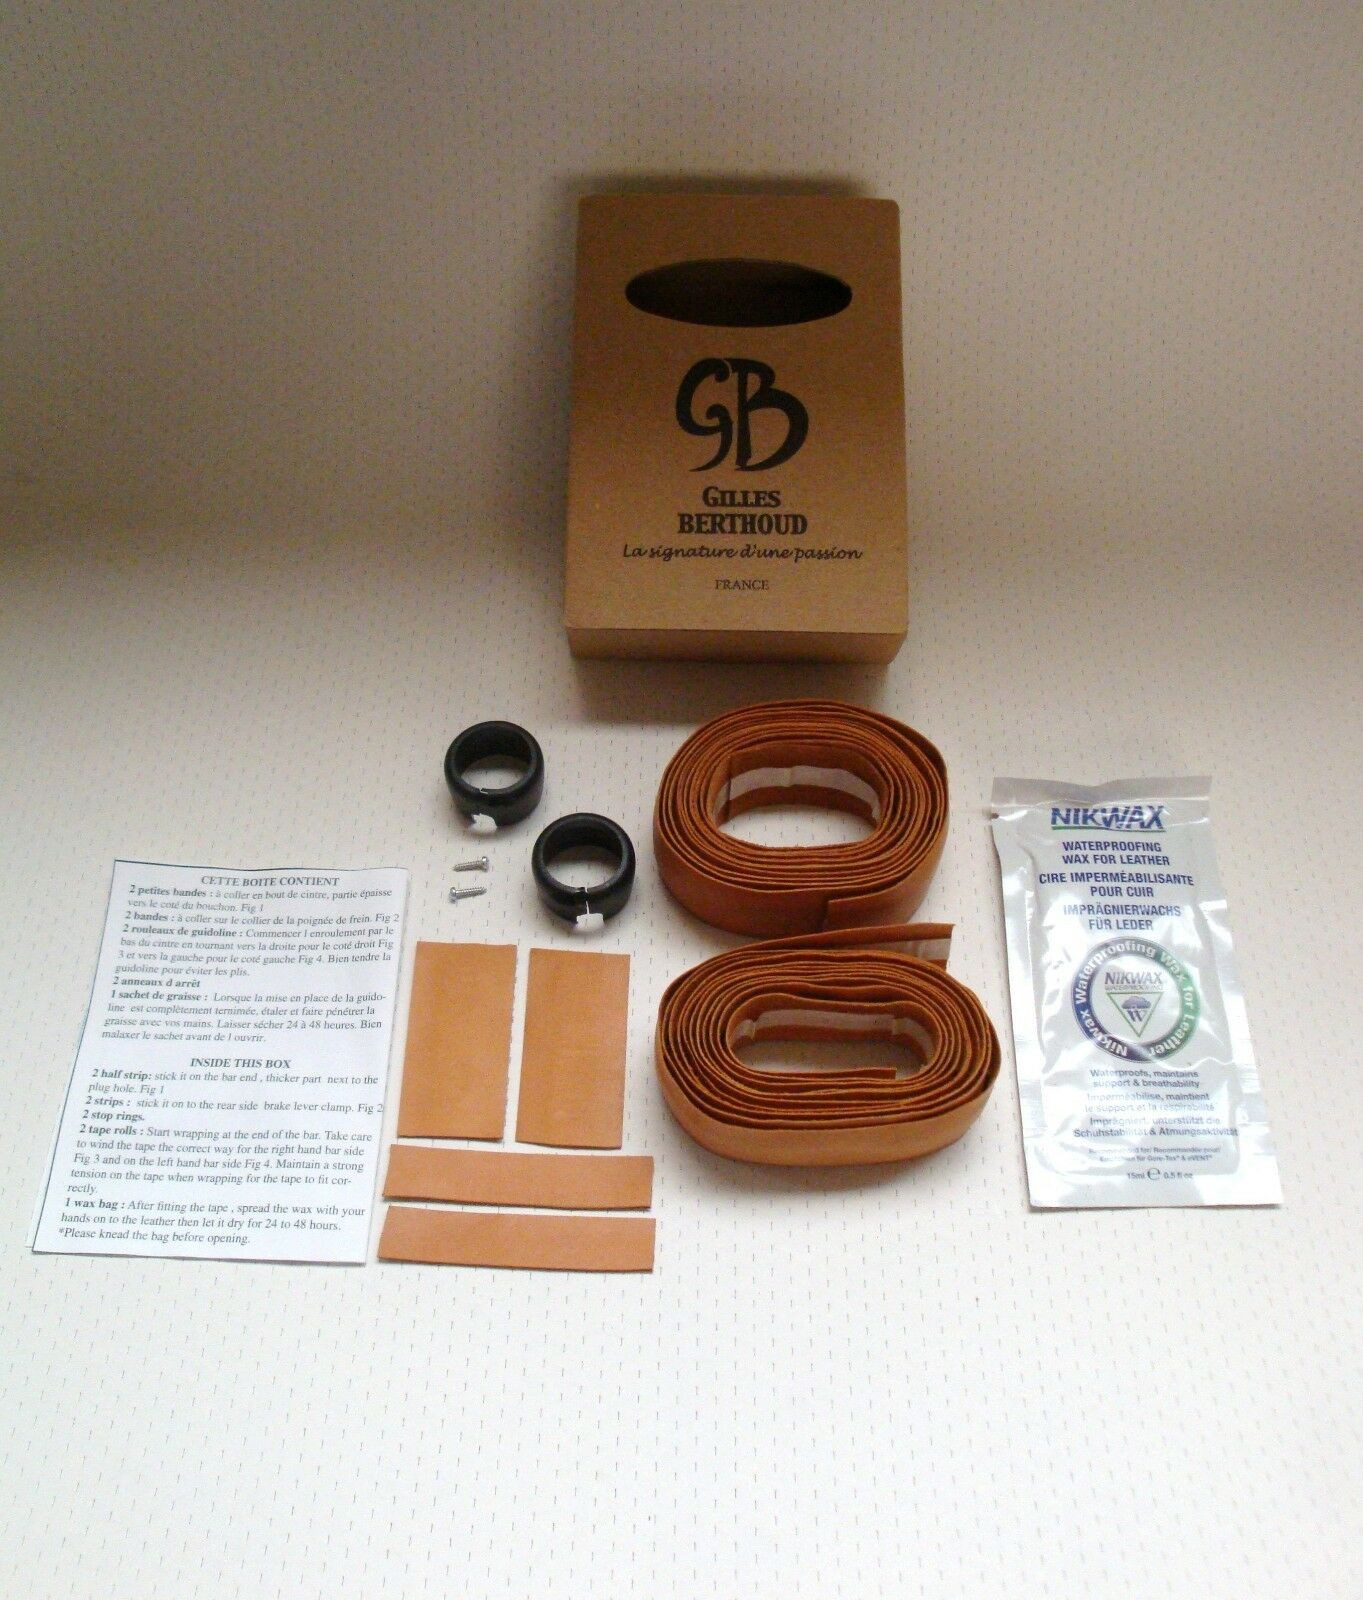 NEW IN BOX GILLES BERTHOUD NATURAL LEATHER CALF HANDLEBAR TAPE MADE IN FRANCE